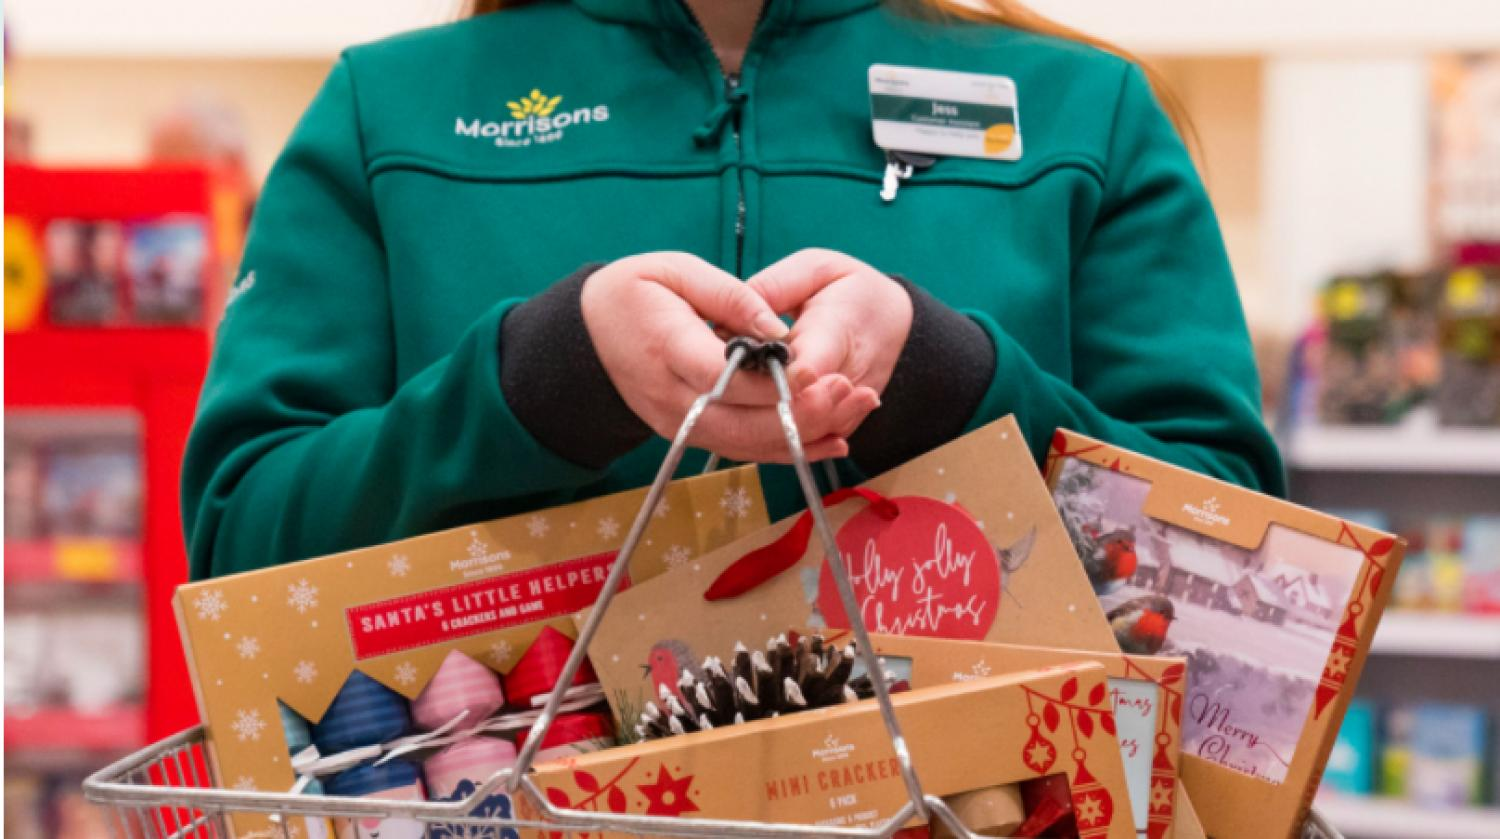 Supermarket clerk with Christmas products